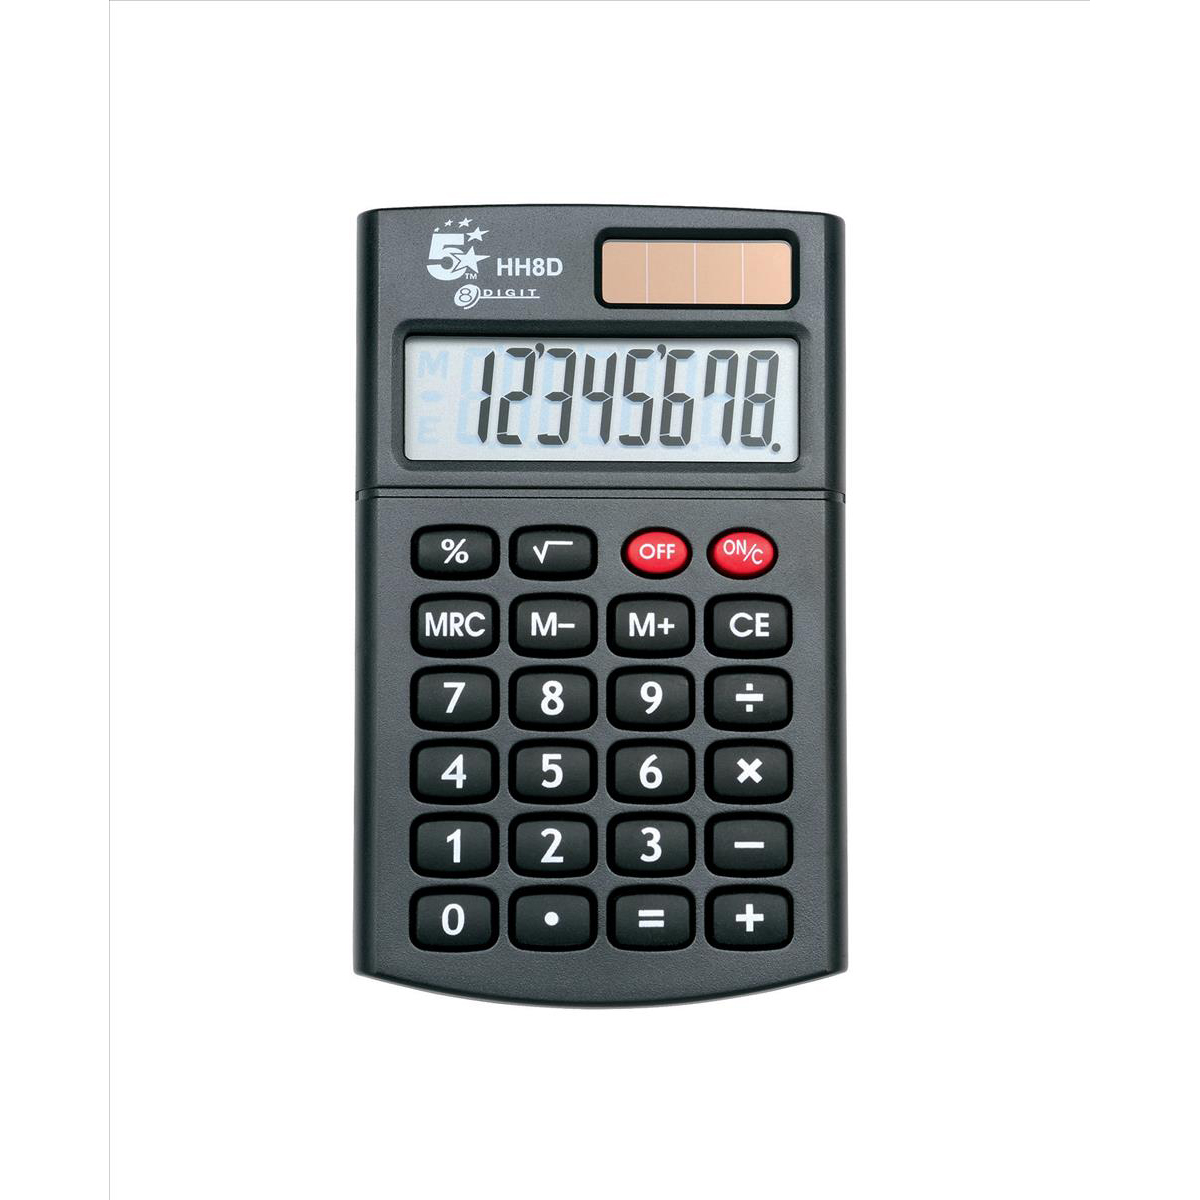 Handheld Calculator 5 Star Office Handheld Calculator 8 Digit 3 Key Memory Solar and Battery Power 56x8x100mm Black